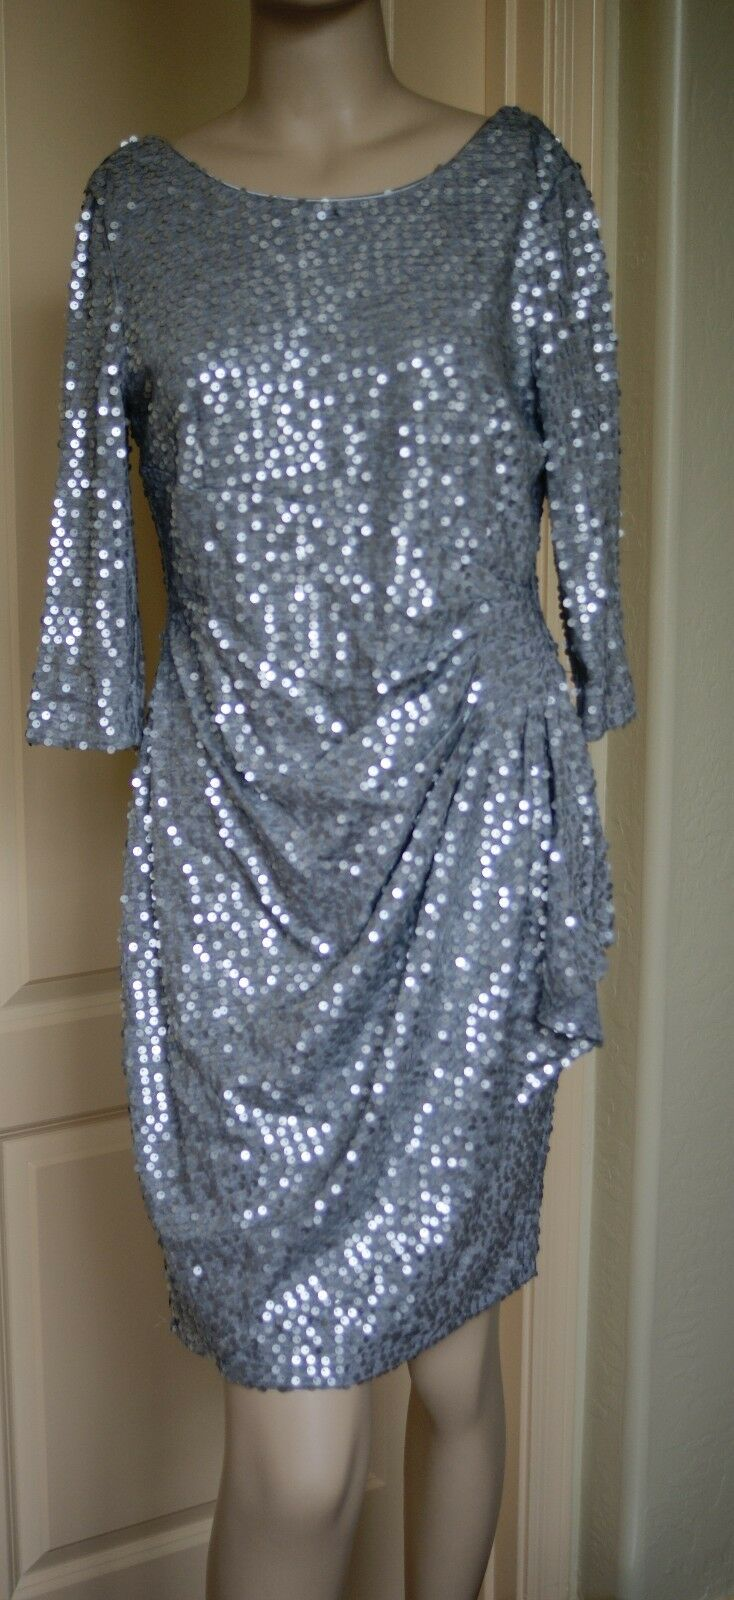 Alex Evenings Sequin Drape Side Dress (Size 10P)